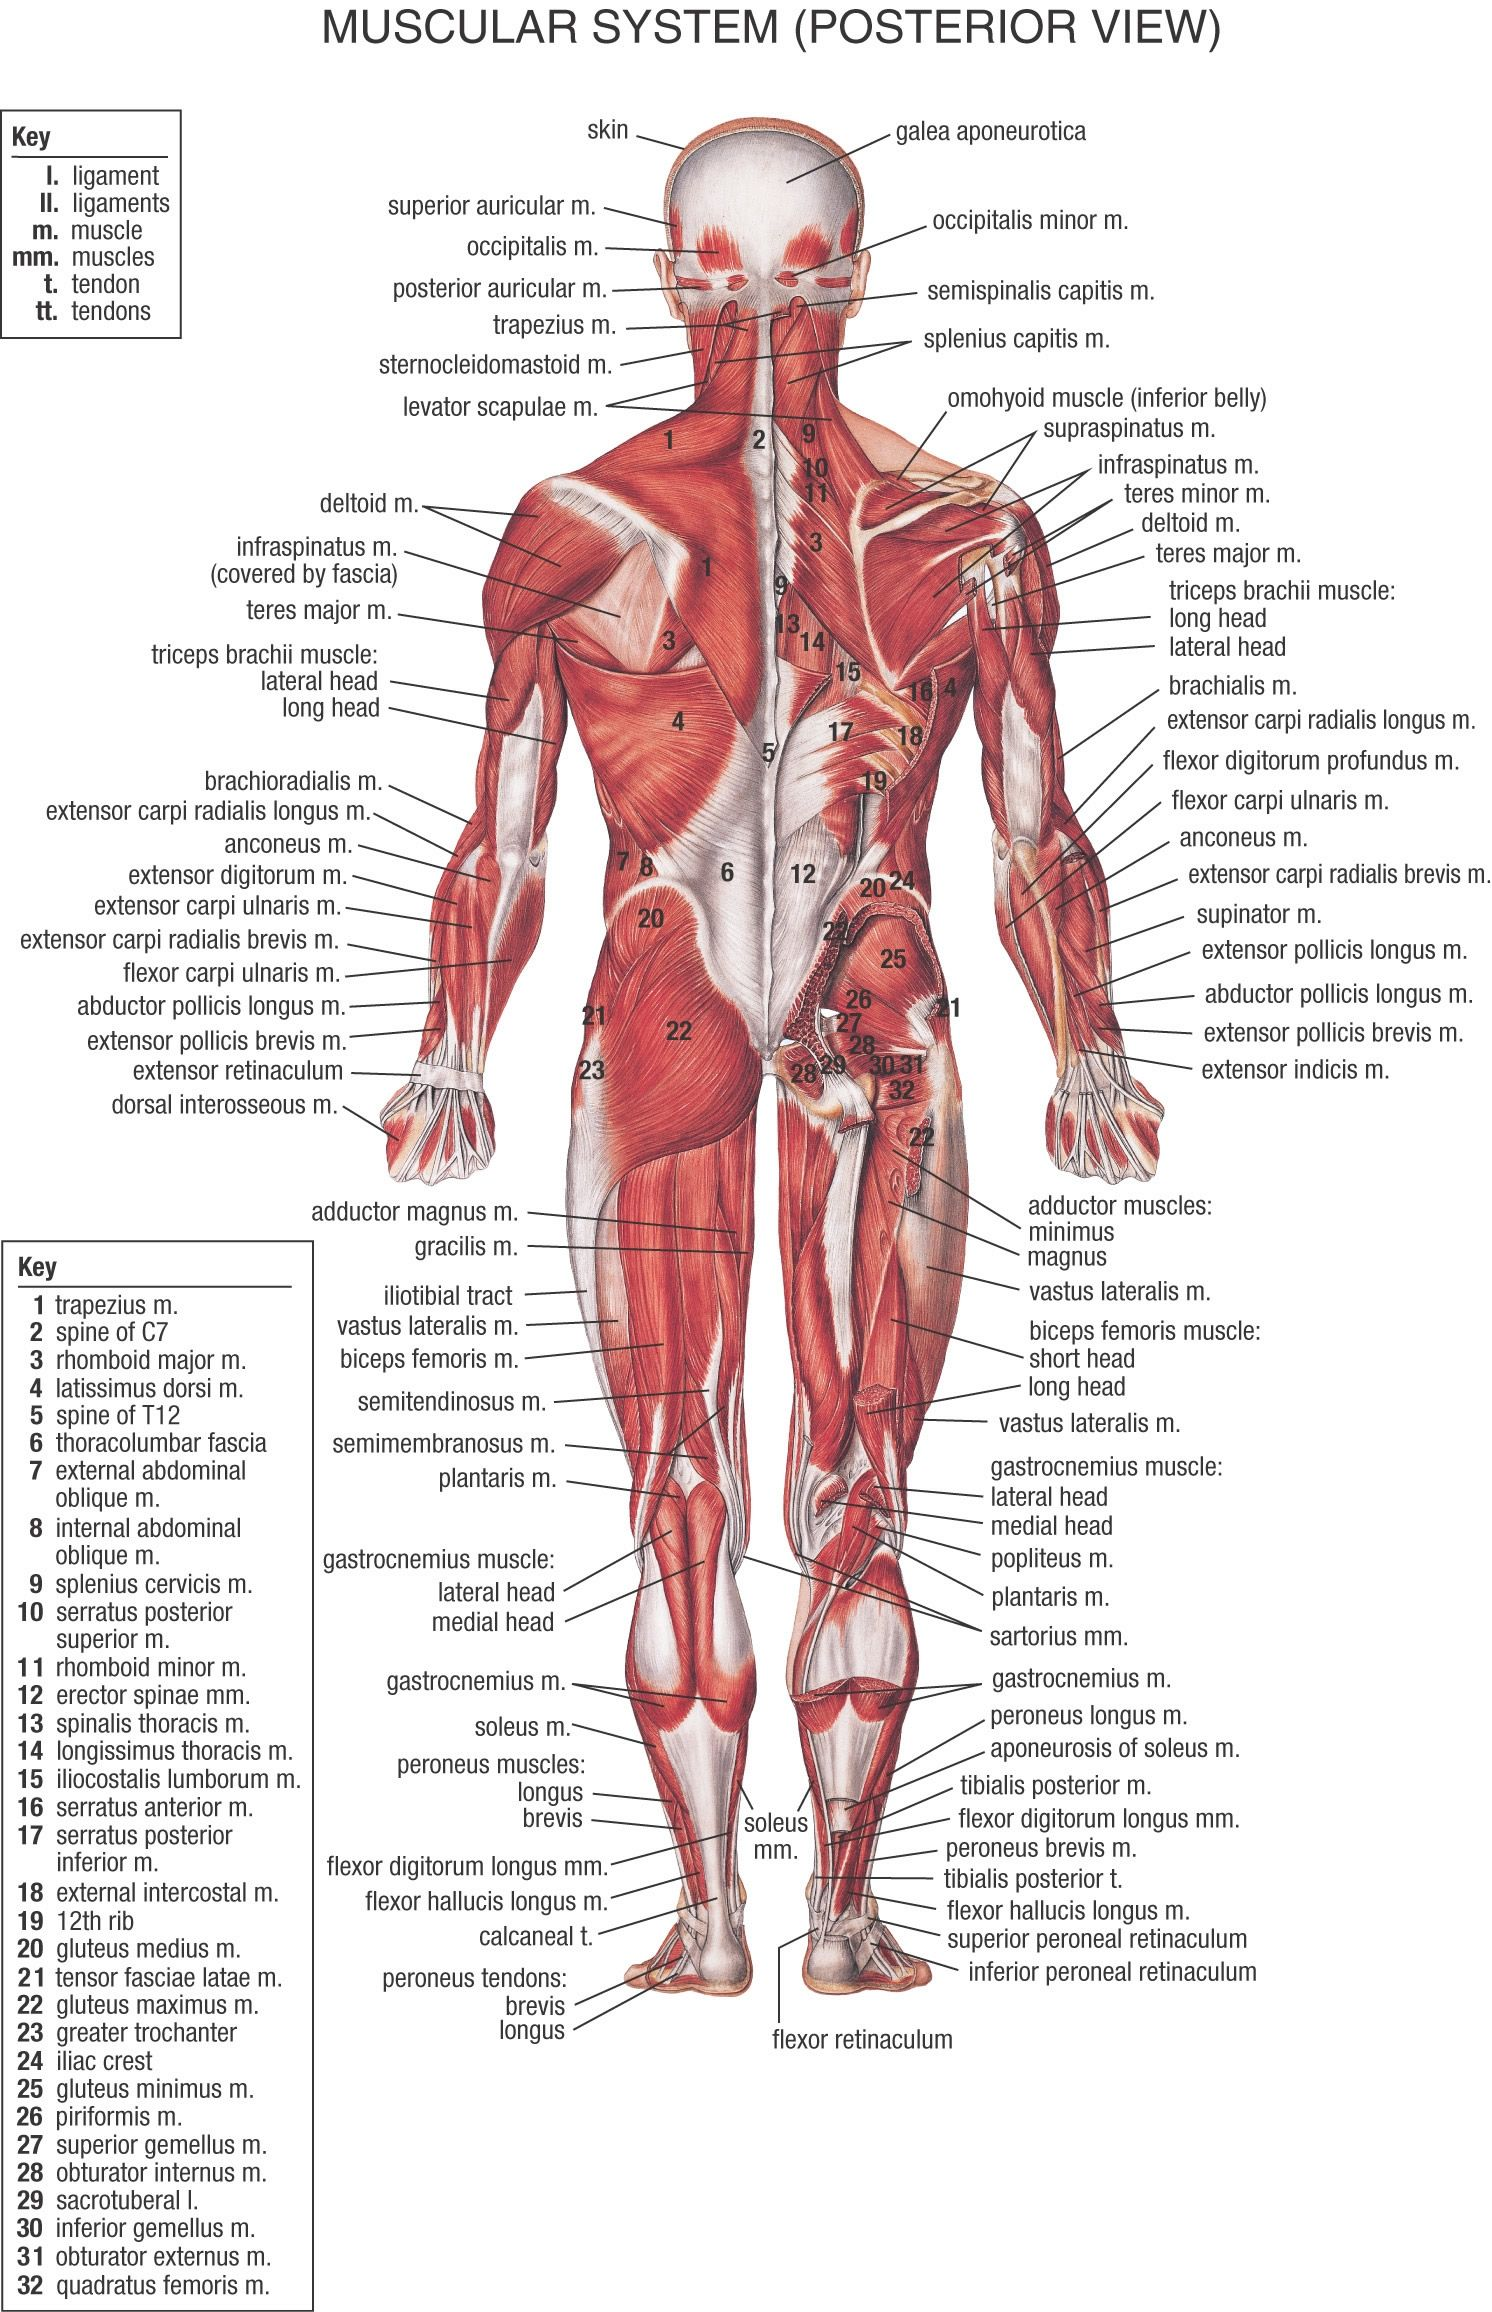 Human Body Organs Diagram Female Dorsal - House Wiring Diagram Symbols •